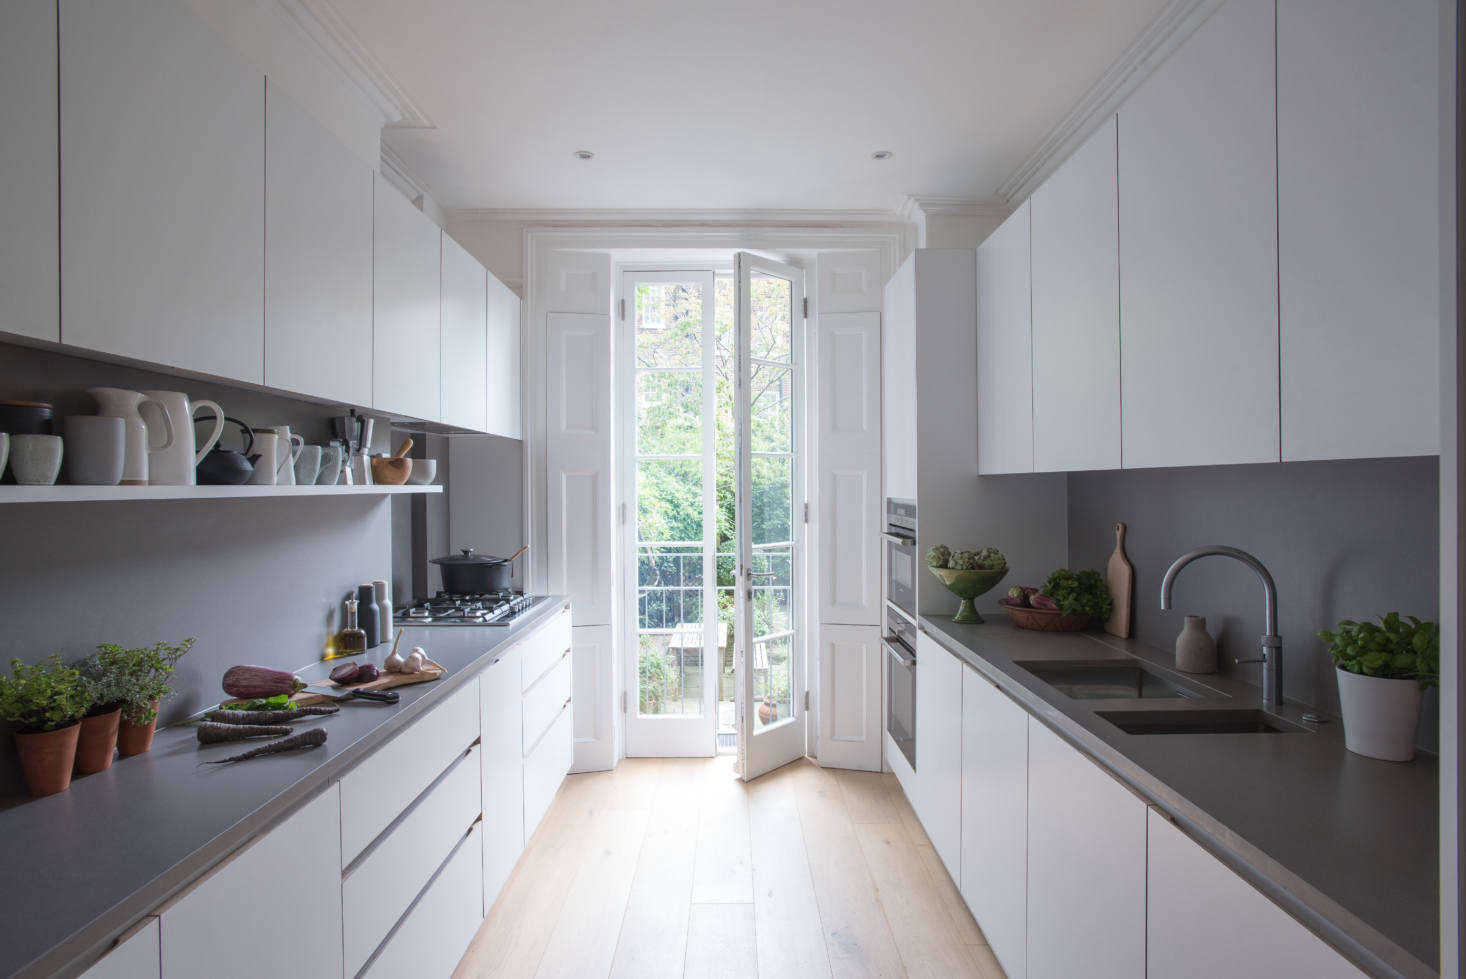 Composed of streamlined cabinets of laminate-clad MDF with oak edging, the kitchen has windows at either end: the French doors overlook an eating area and garden. The design is known as the JT Original.